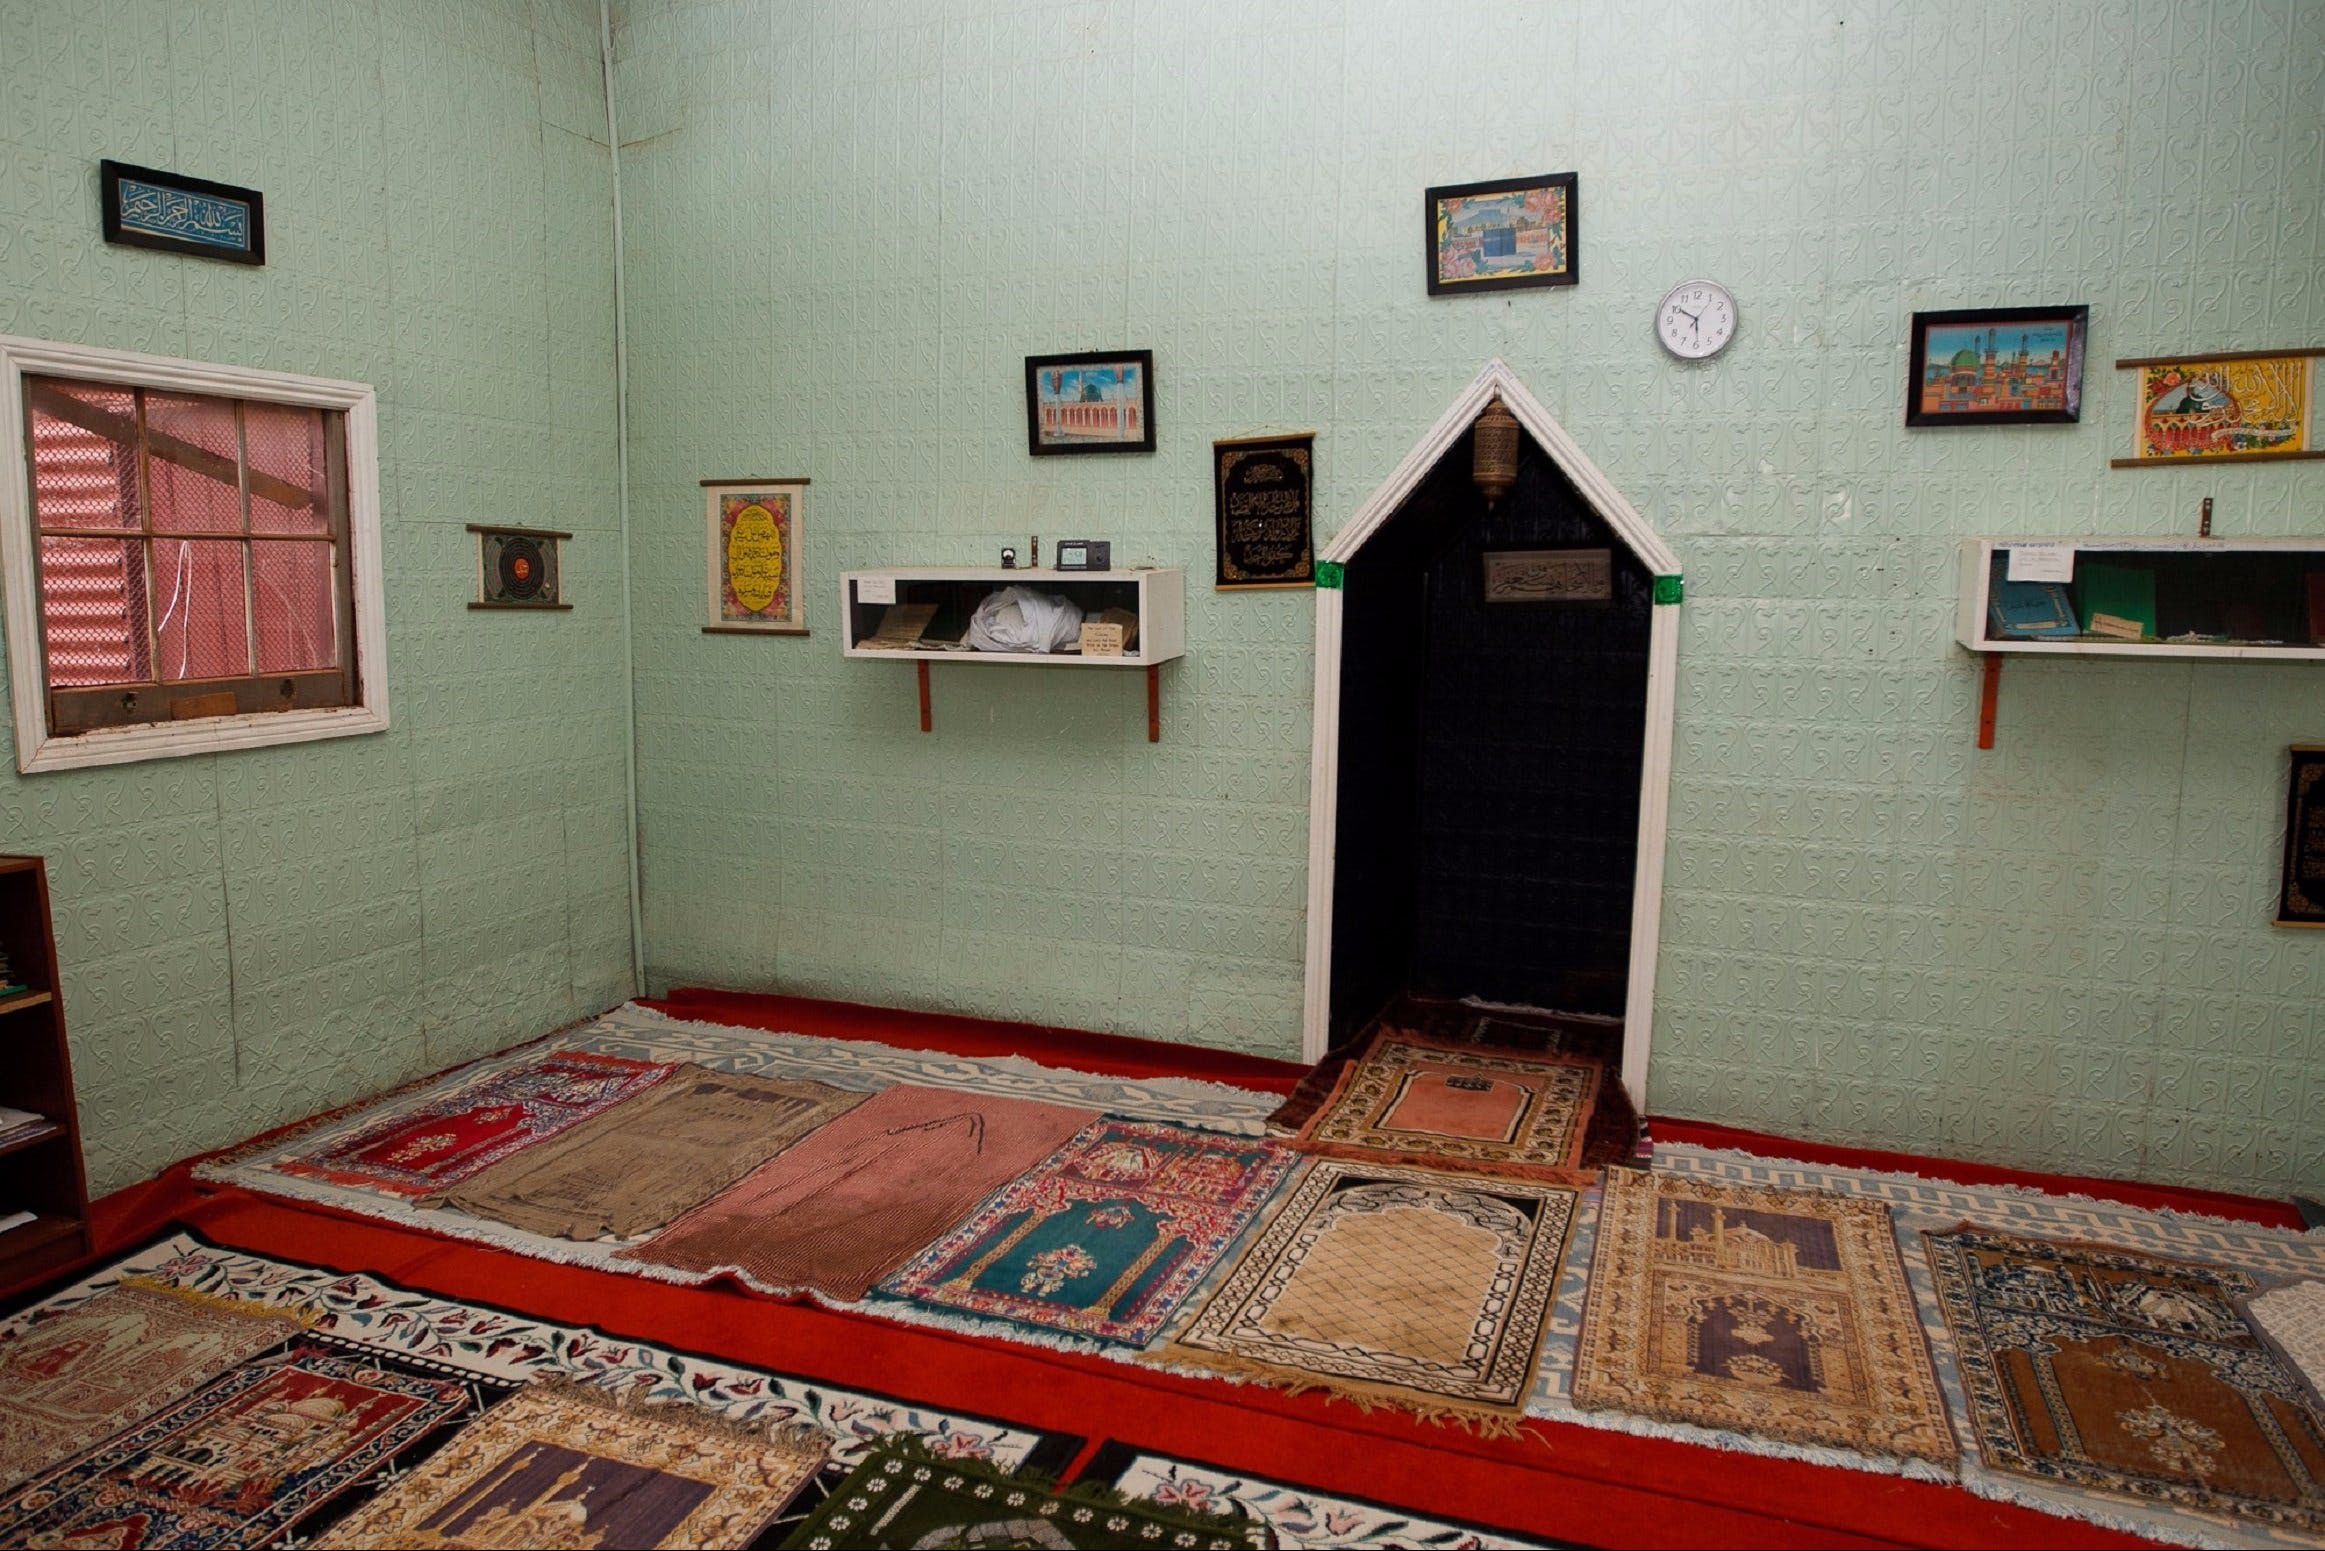 Afghan Mosque - Accommodation Perth